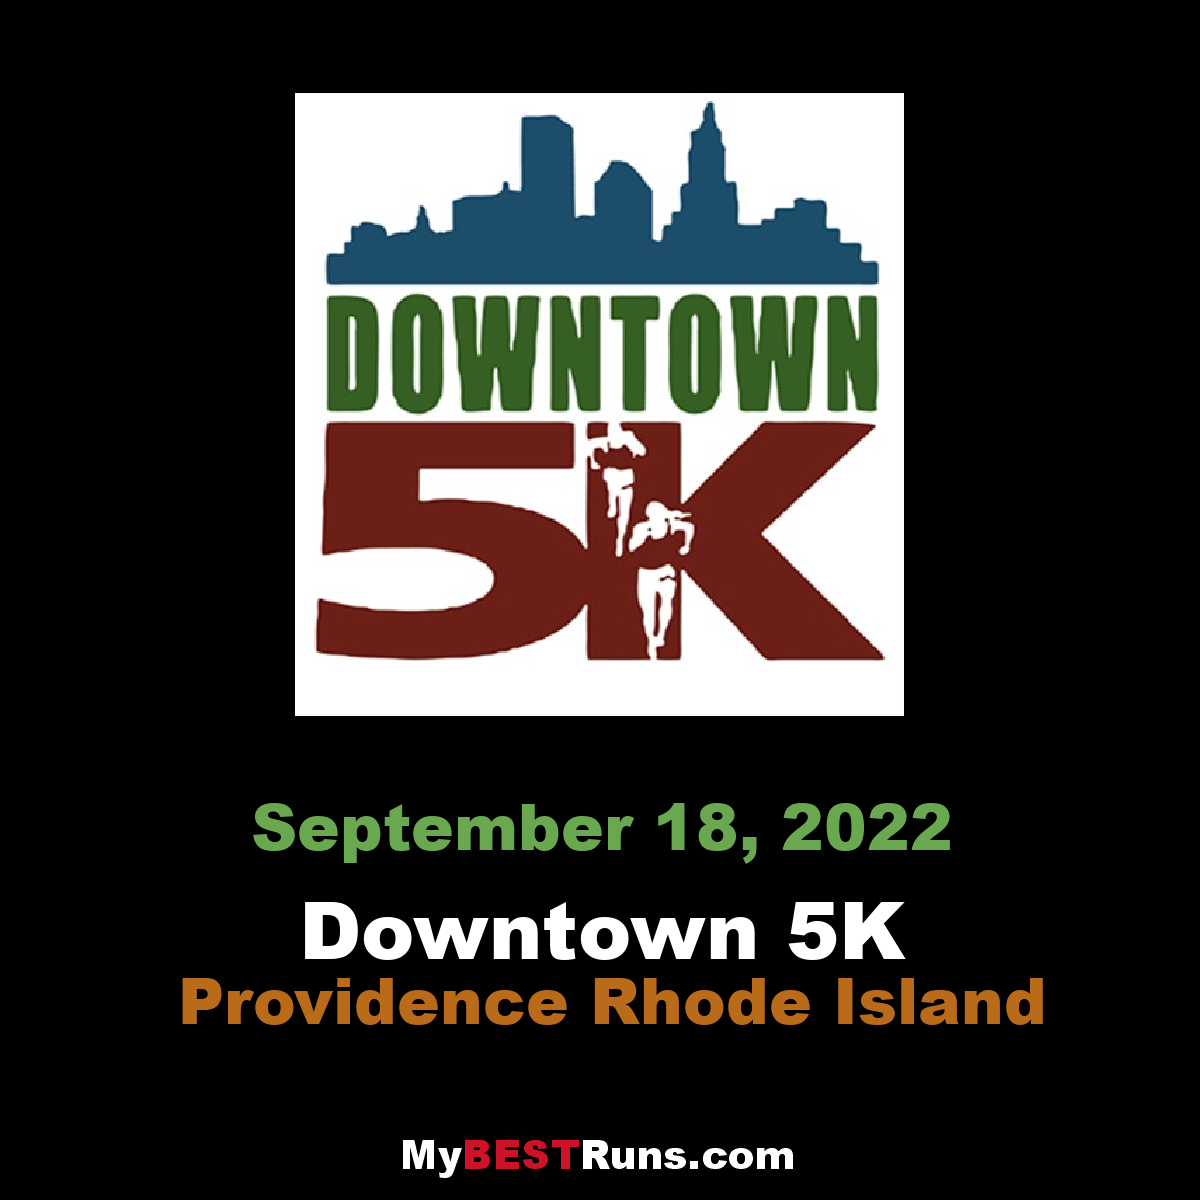 CVS HEALTH DOWNTOWN 5K